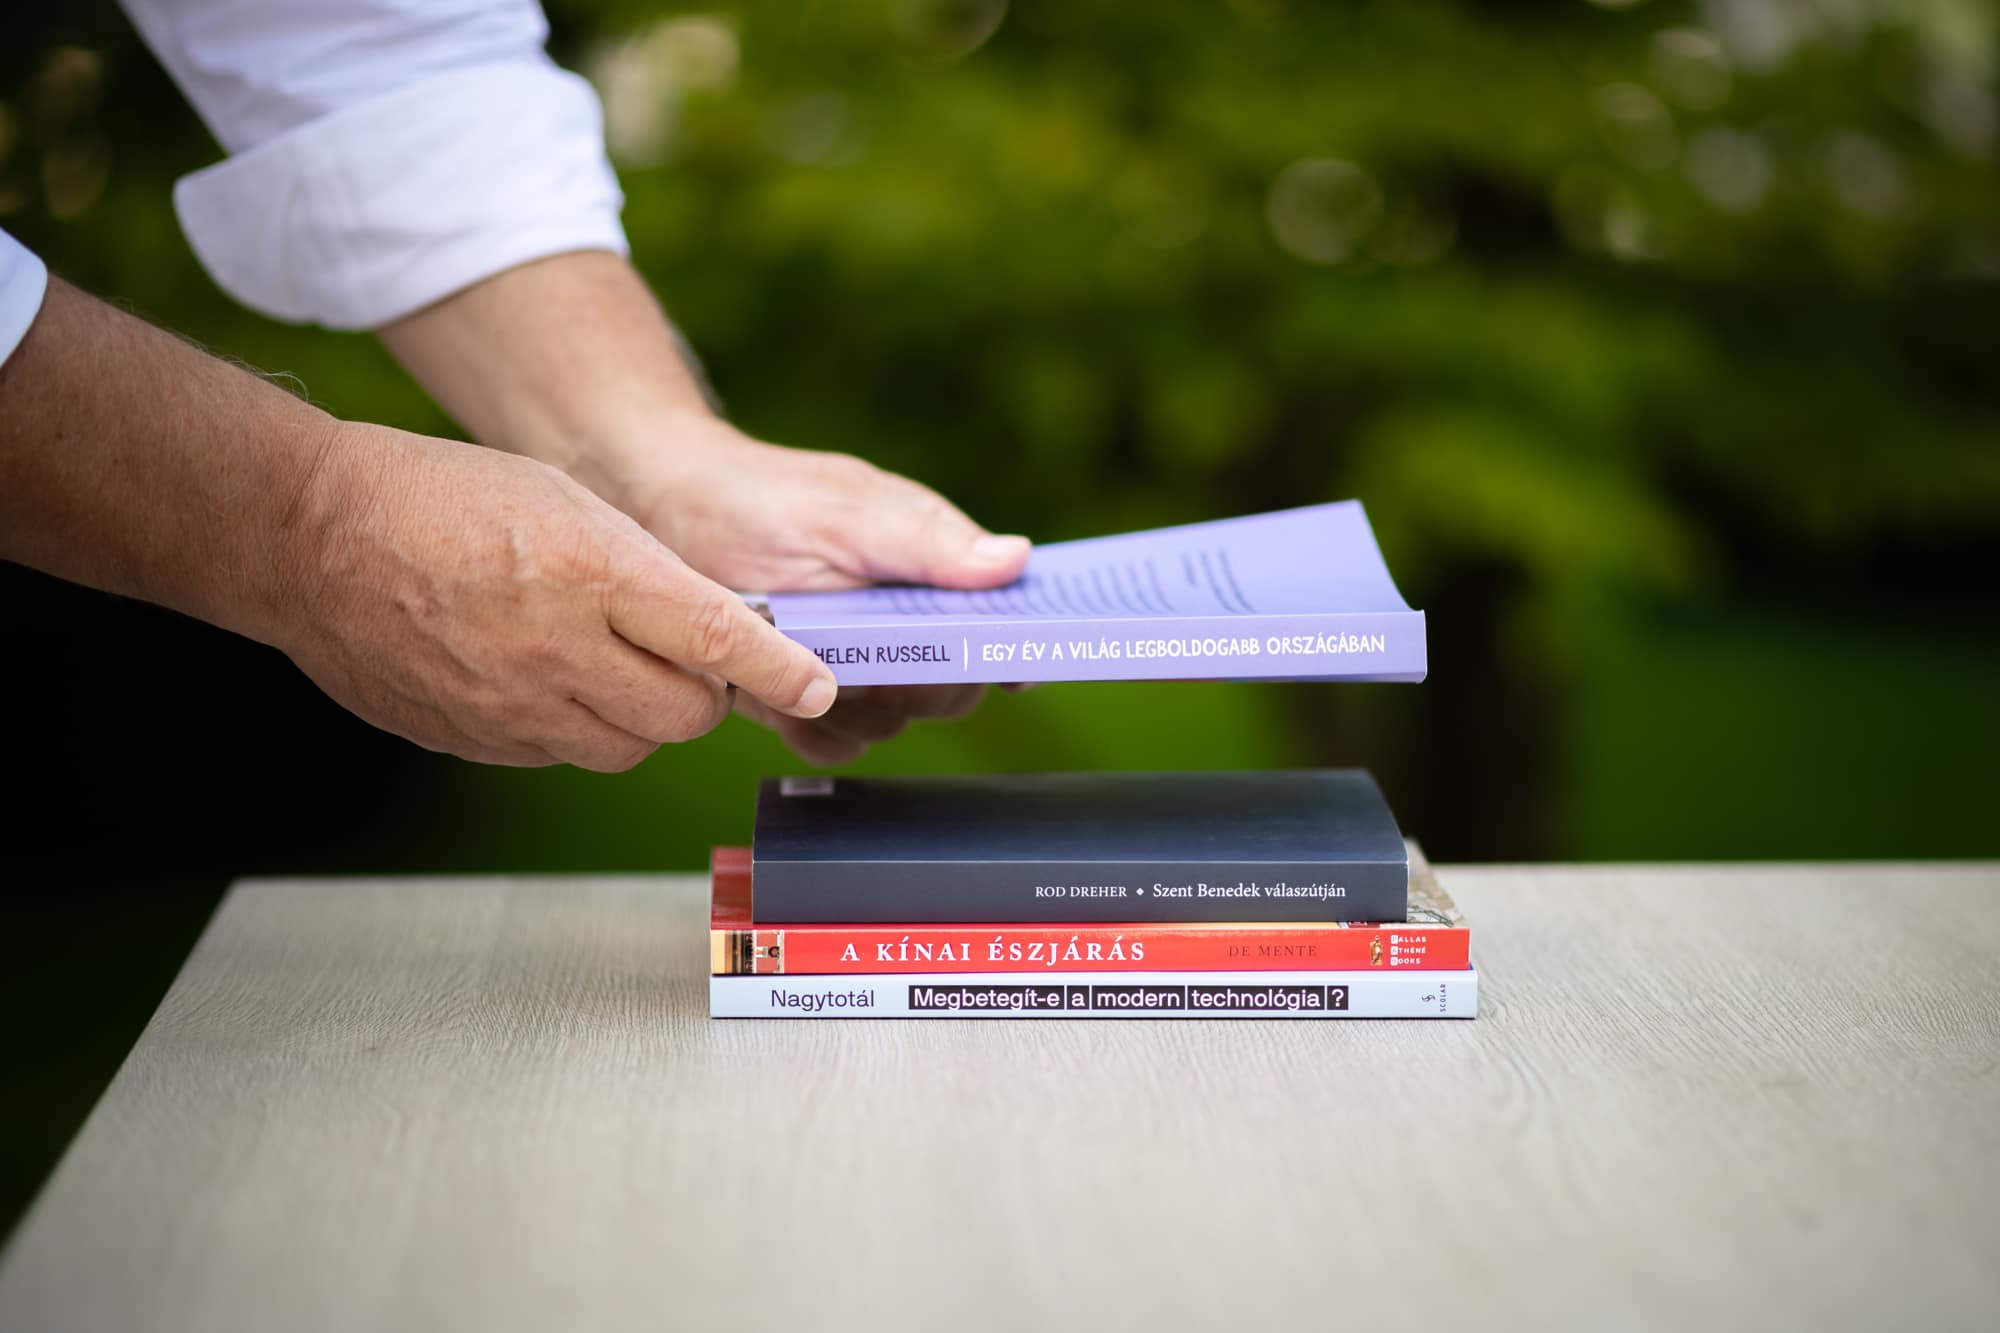 PM Viktor Orbán's Suggestions for Summer Reading